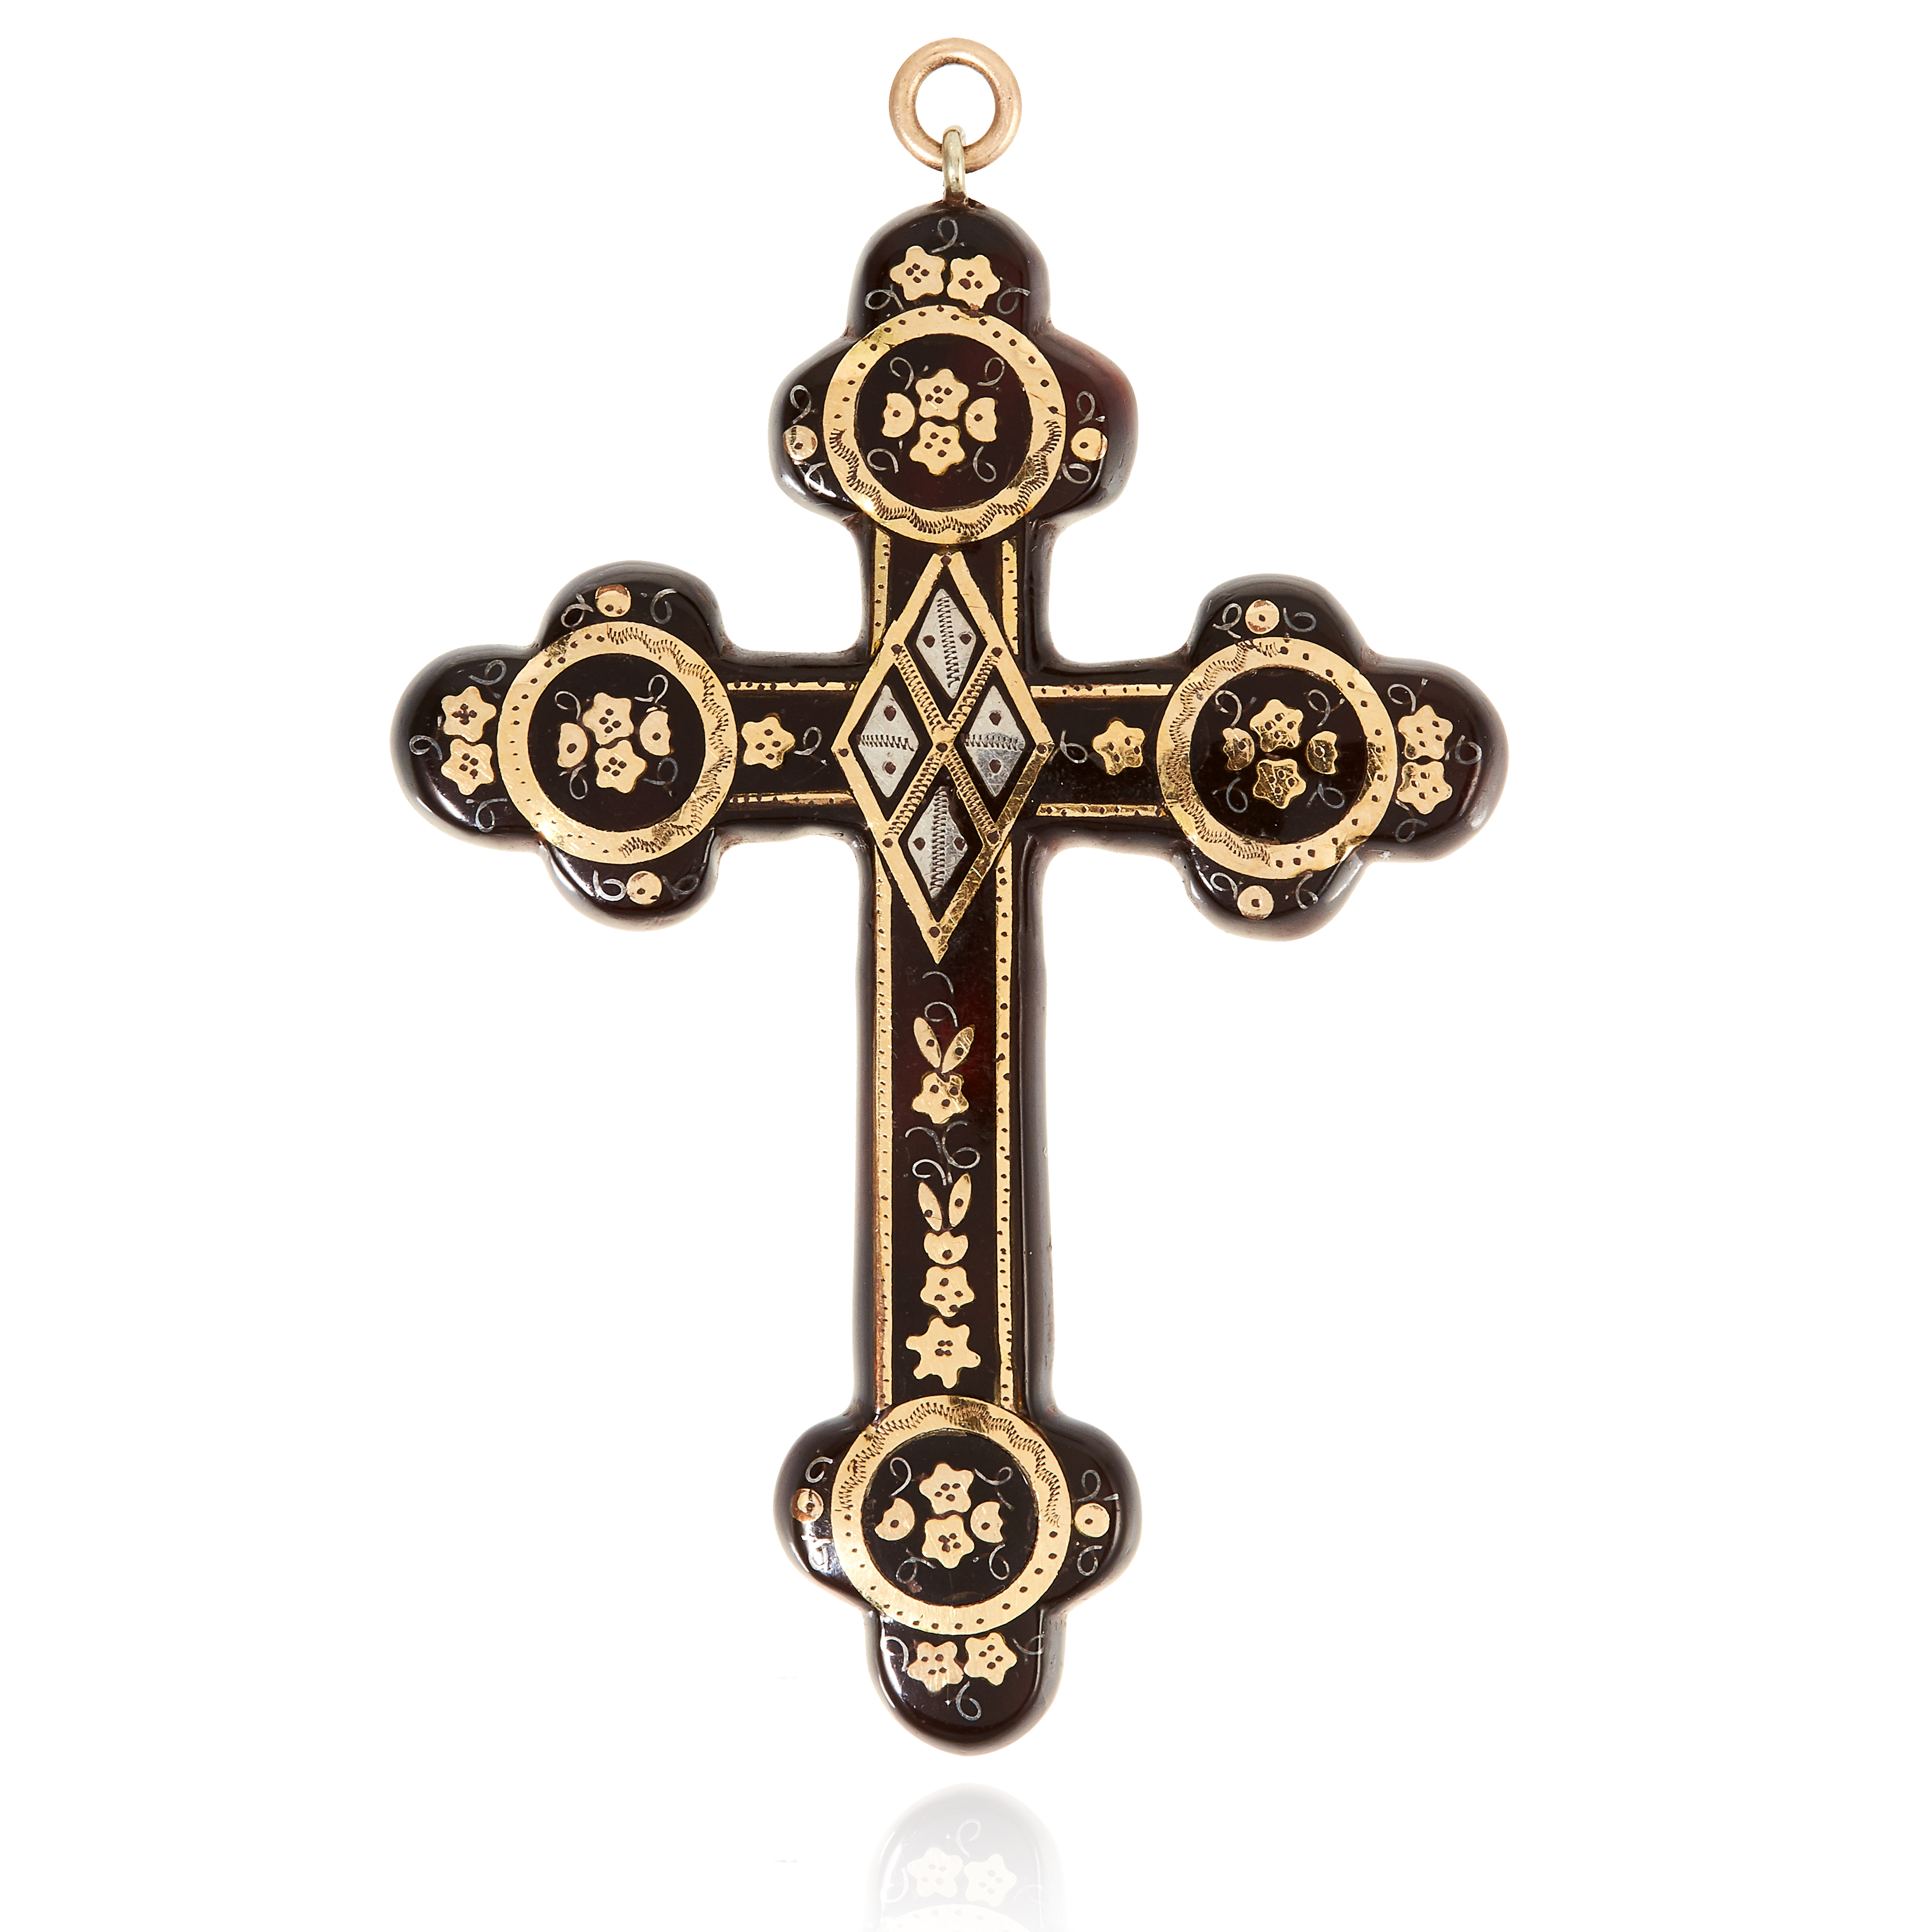 AN ANTIQUE TORTOISESHELL PIQUE PENDANT, 19TH CENTURY designed as a cross / crucifix, decorated